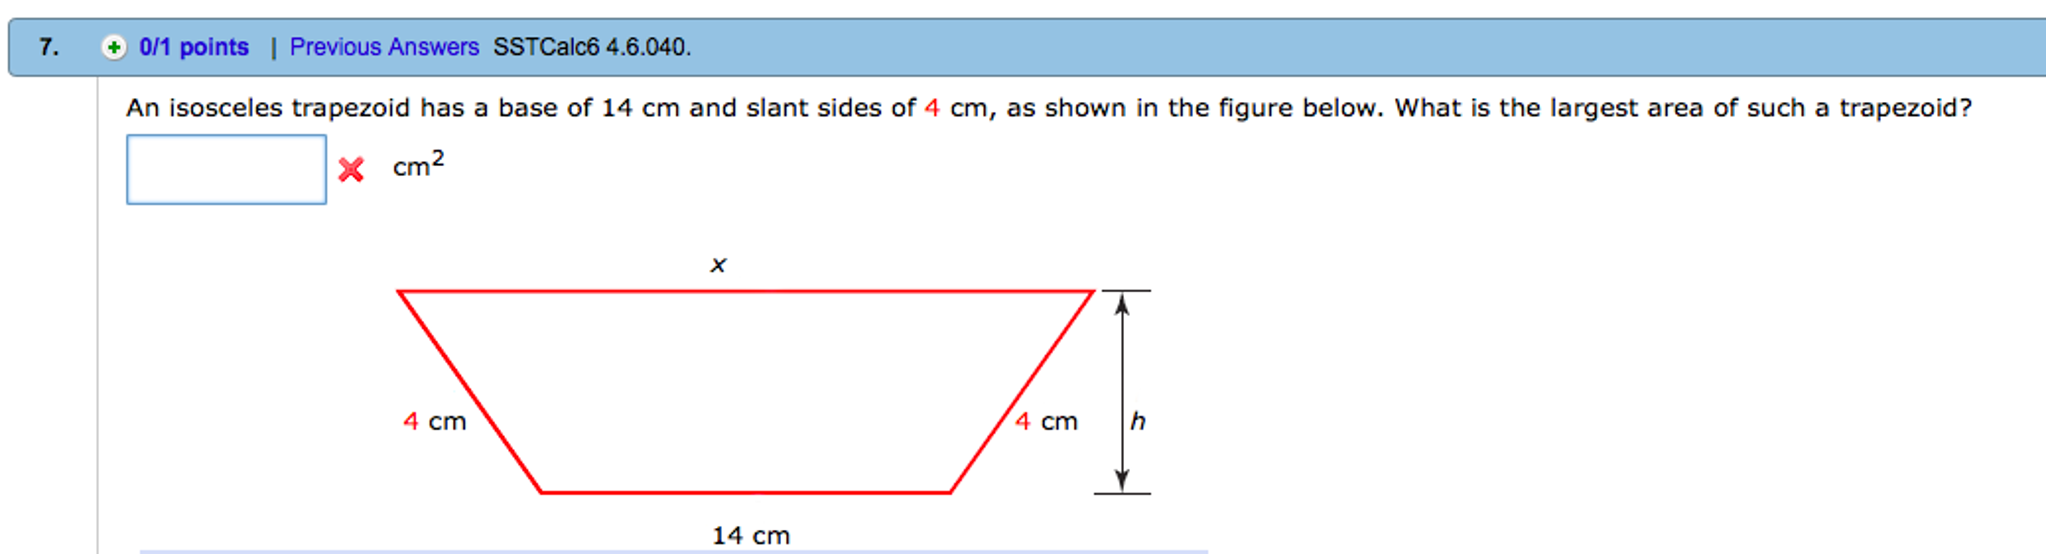 An Isosceles Trapezoid Has A Base Of 14 Cm And Slant Sides Of 4 Cm,